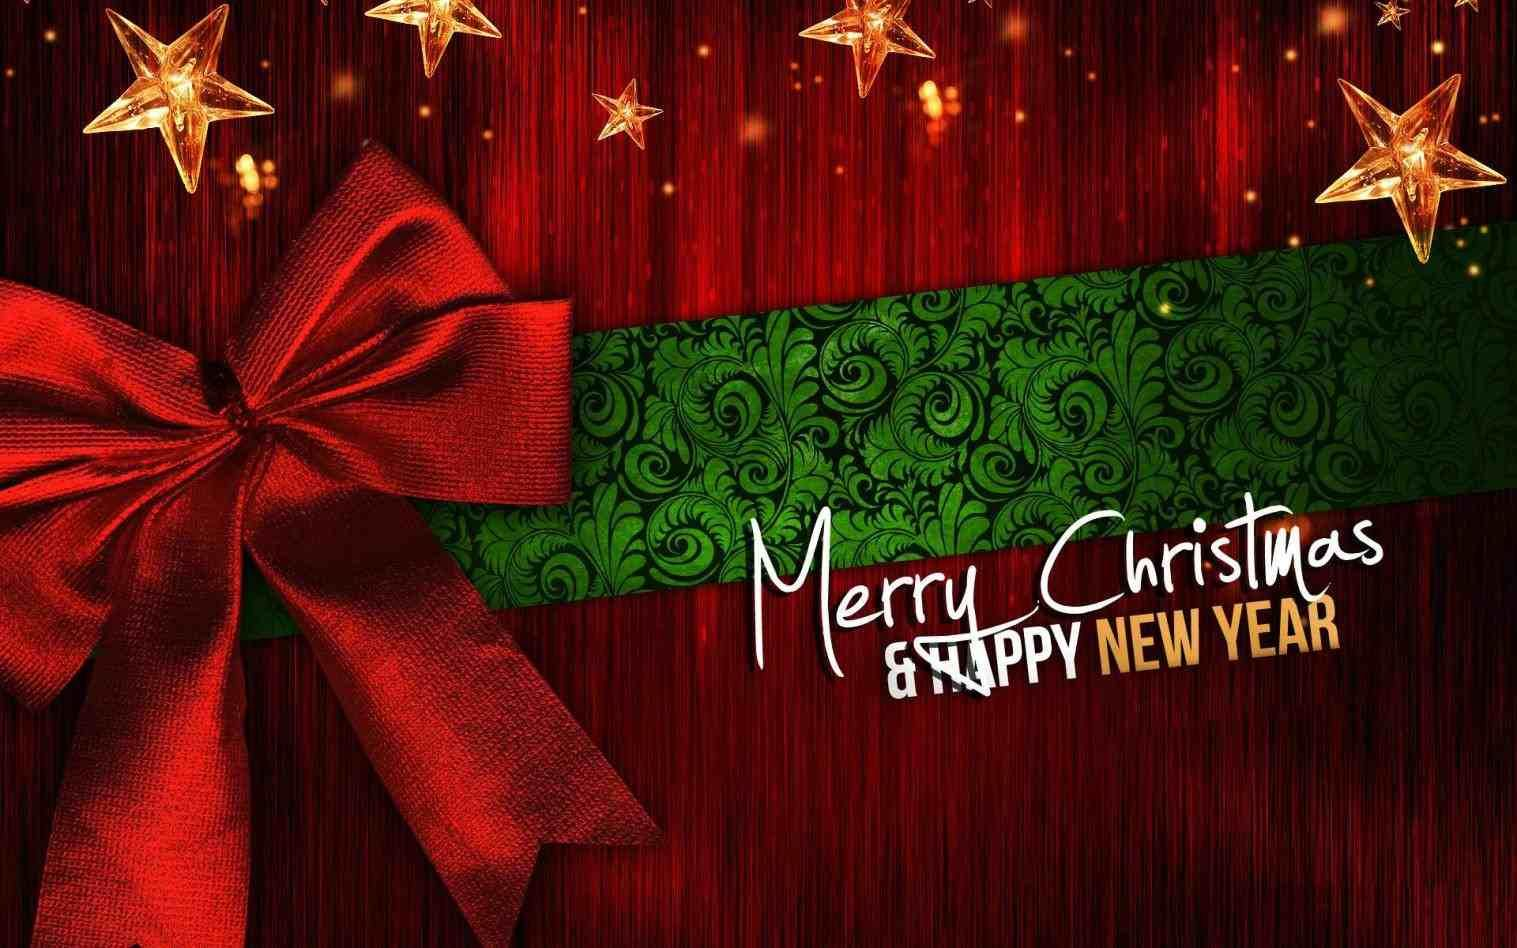 Merry christmas happy new year 2016 whatsapp video greetings sms new post merry christmas and happy year wallpaper 2014 interesting visit xmastsite m4hsunfo